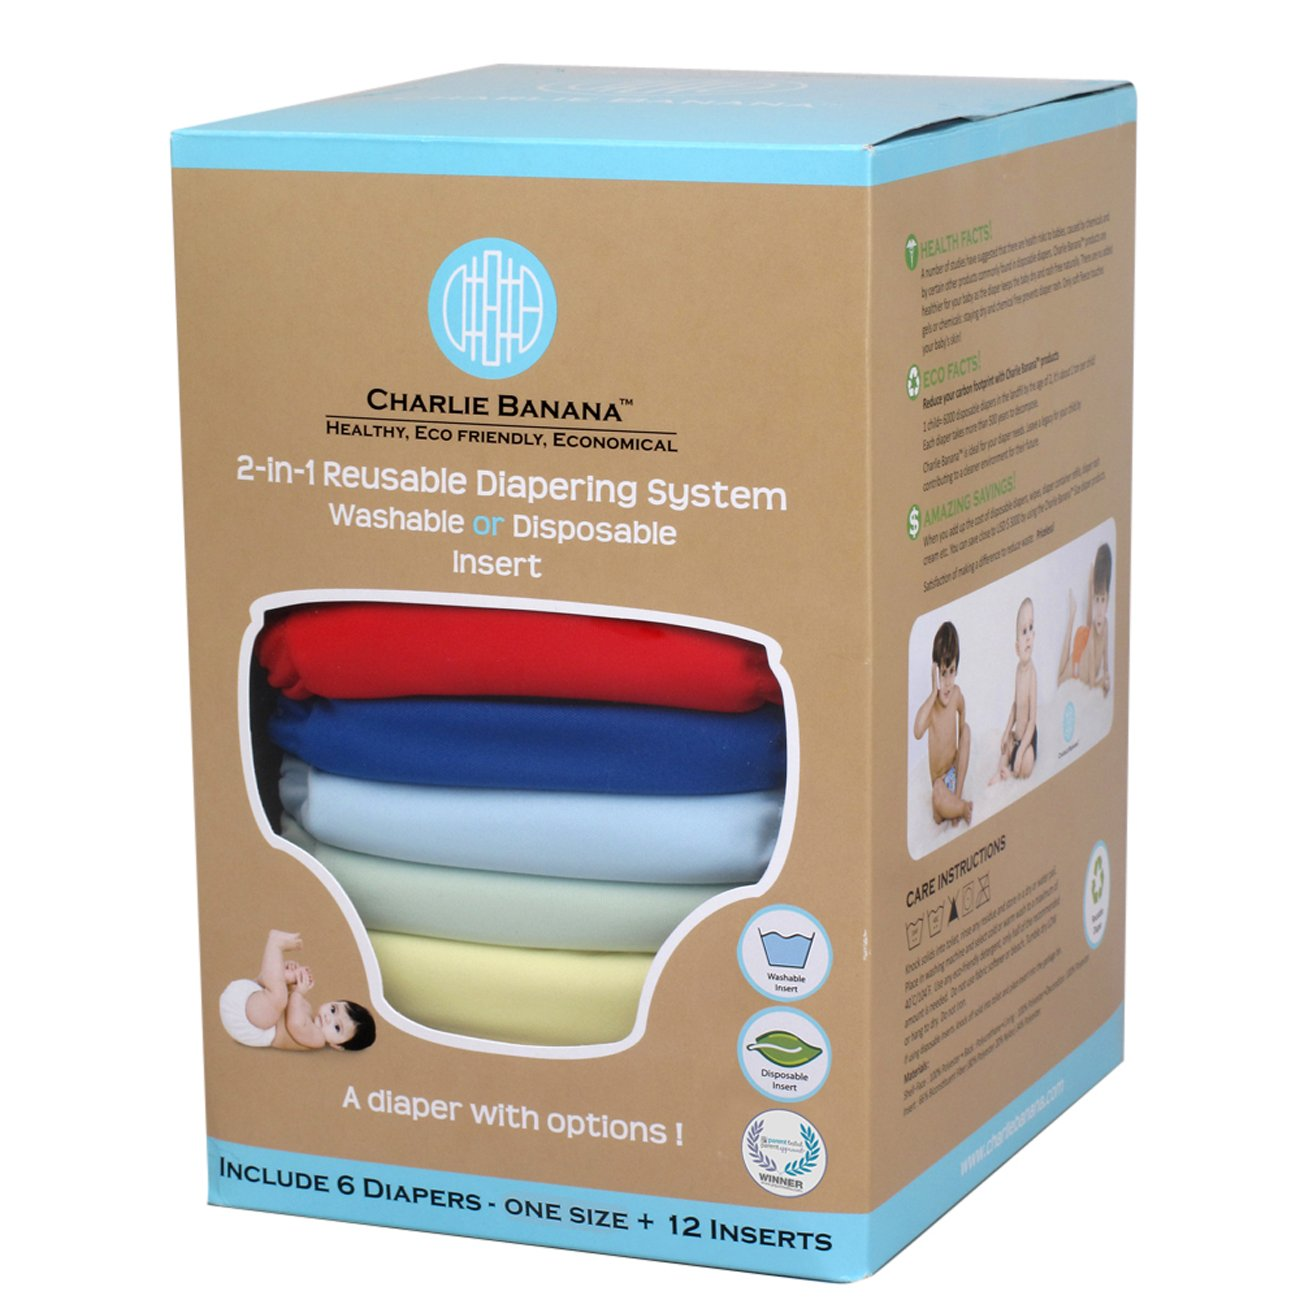 Charlie Banana 2-in-1 Reusable Diapers, Boy, 6 Diapers- One Size + 12 Inserts Winc Design Limited 889425